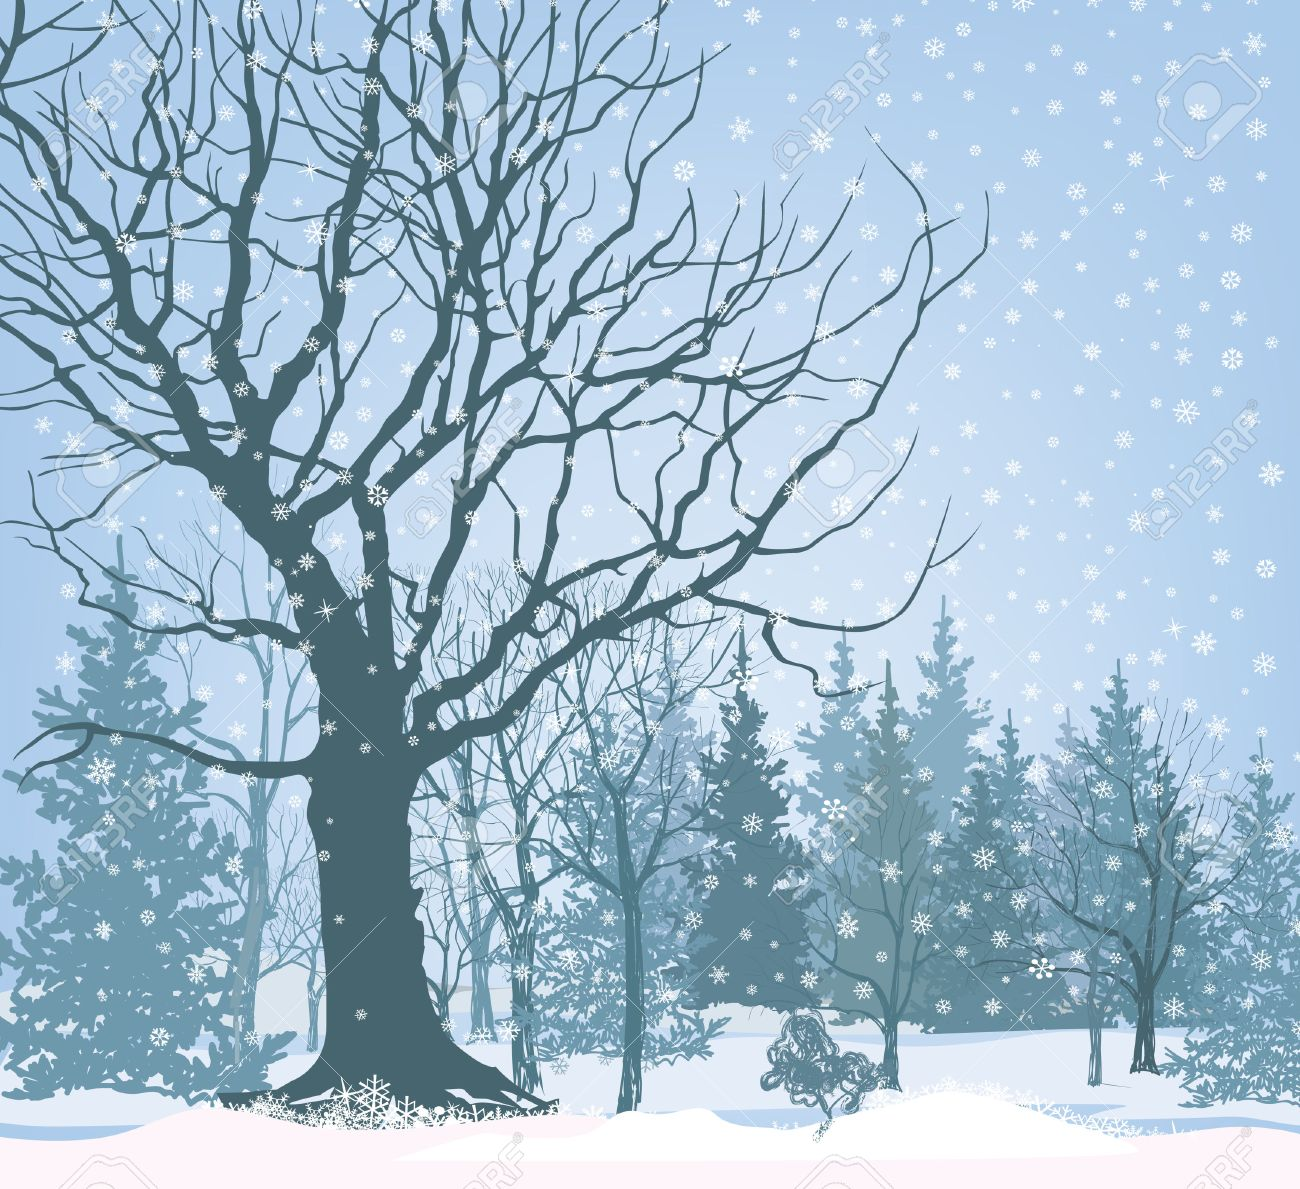 Christmas Snow Landscape Wallpaper Snowy Forest Background